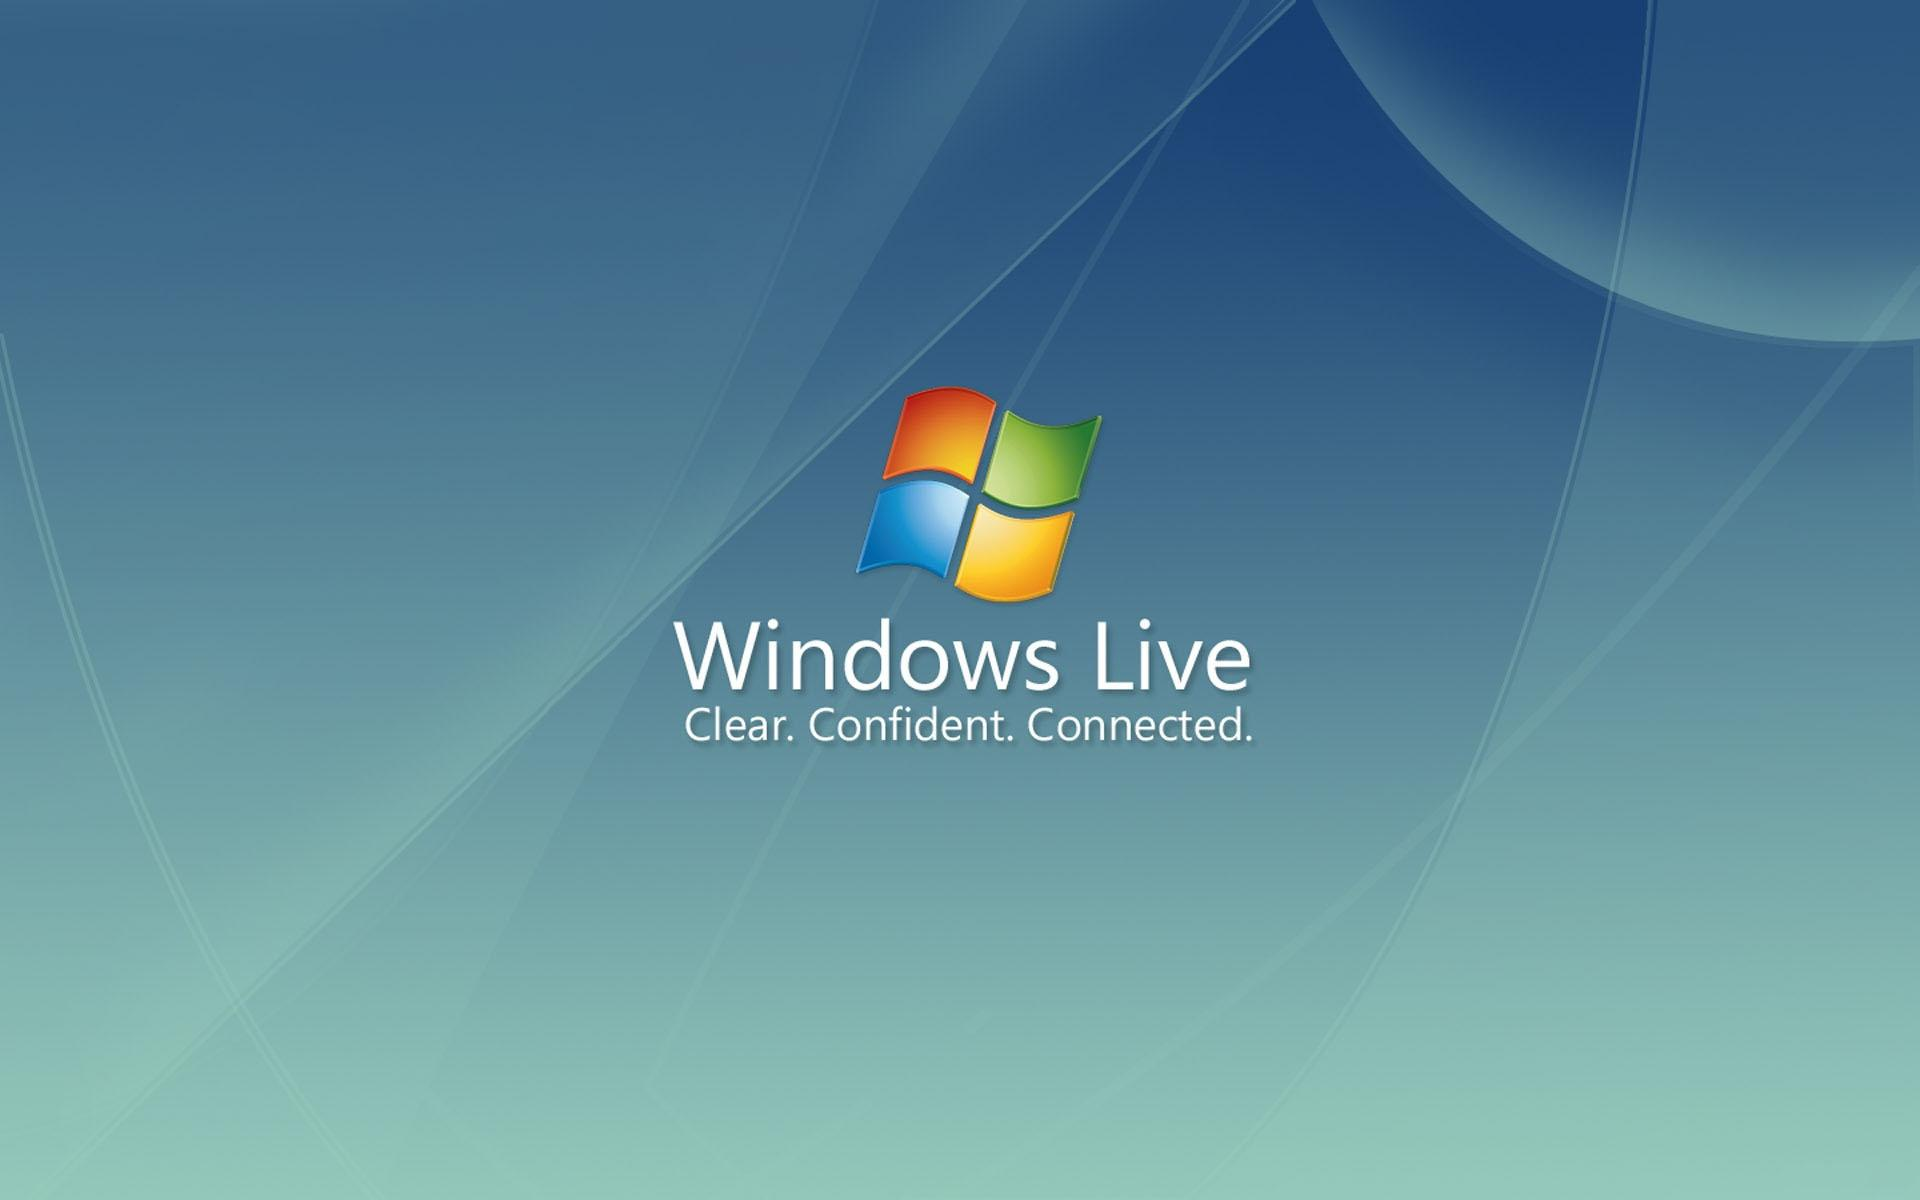 Обои Windows Live 1920x1200